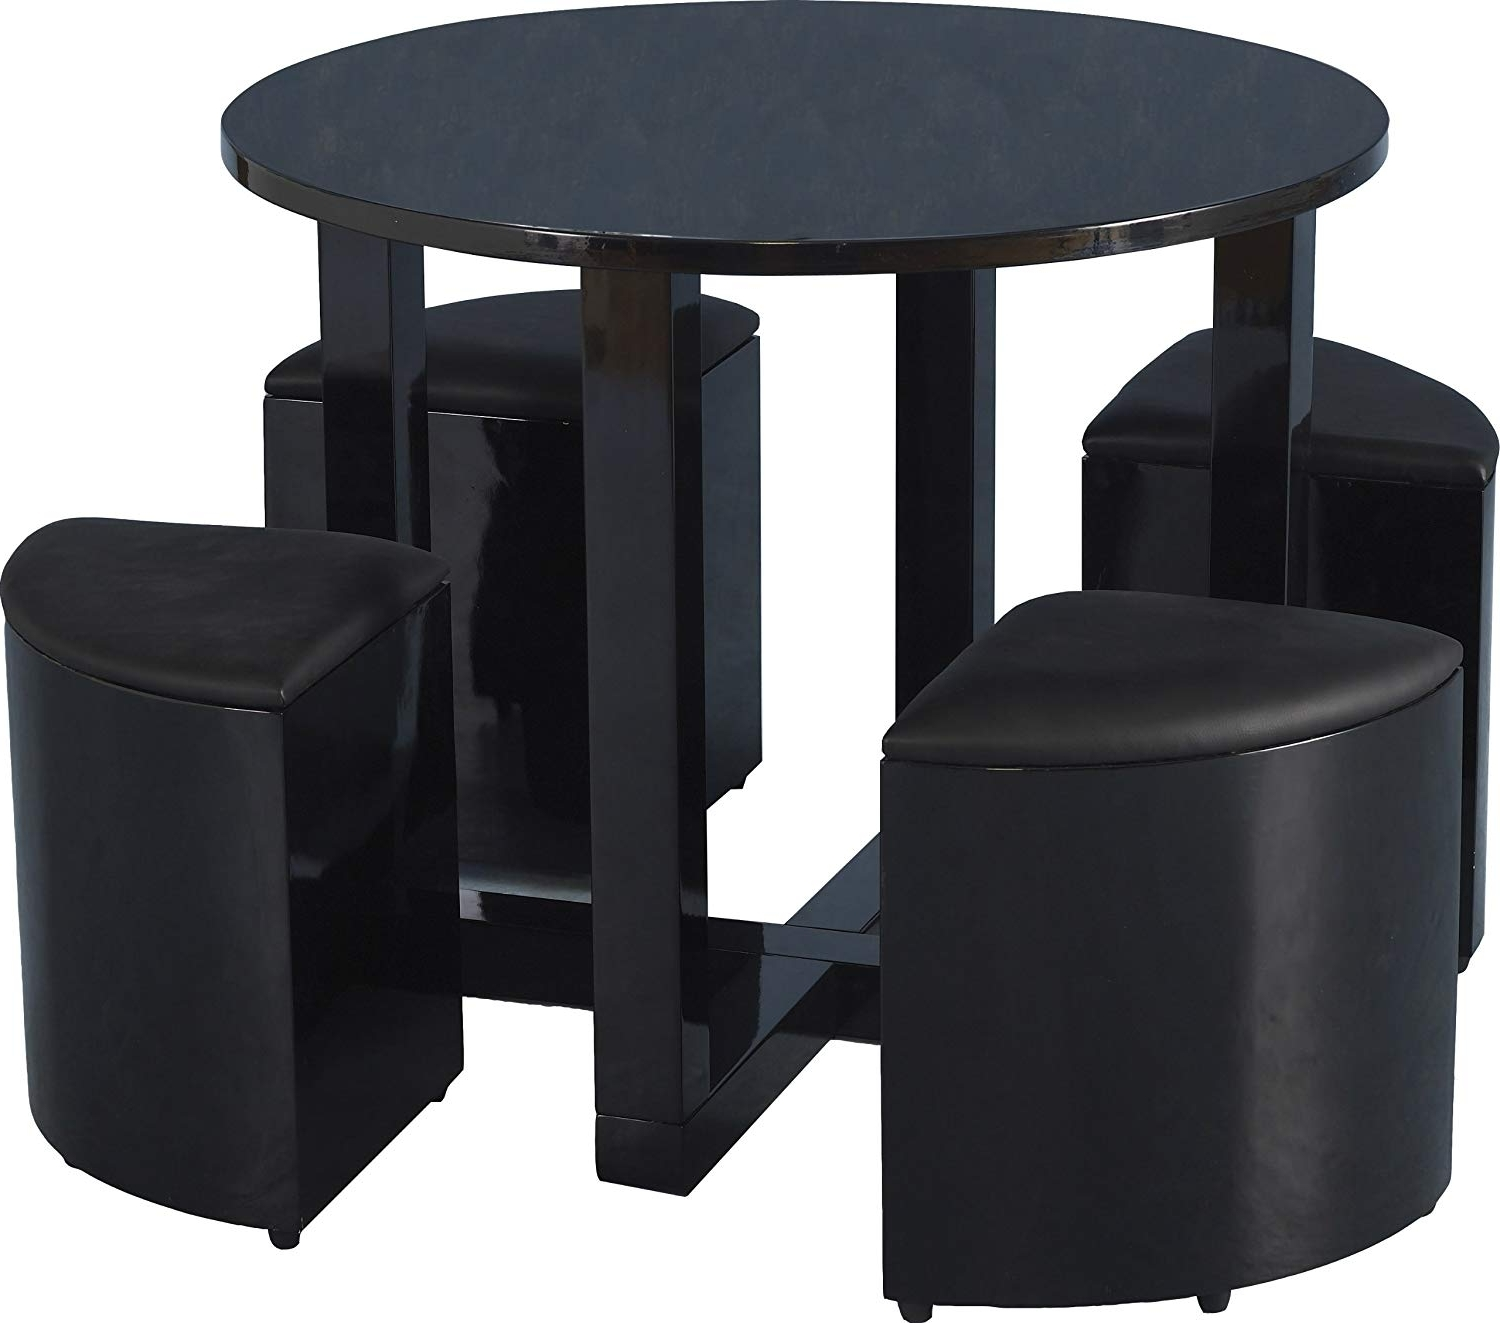 2018 Stowaway Dining Tables And Chairs Inside Seconique Charisma Stowaway 90Cm Black Gloss Dining Table And  (View 22 of 25)